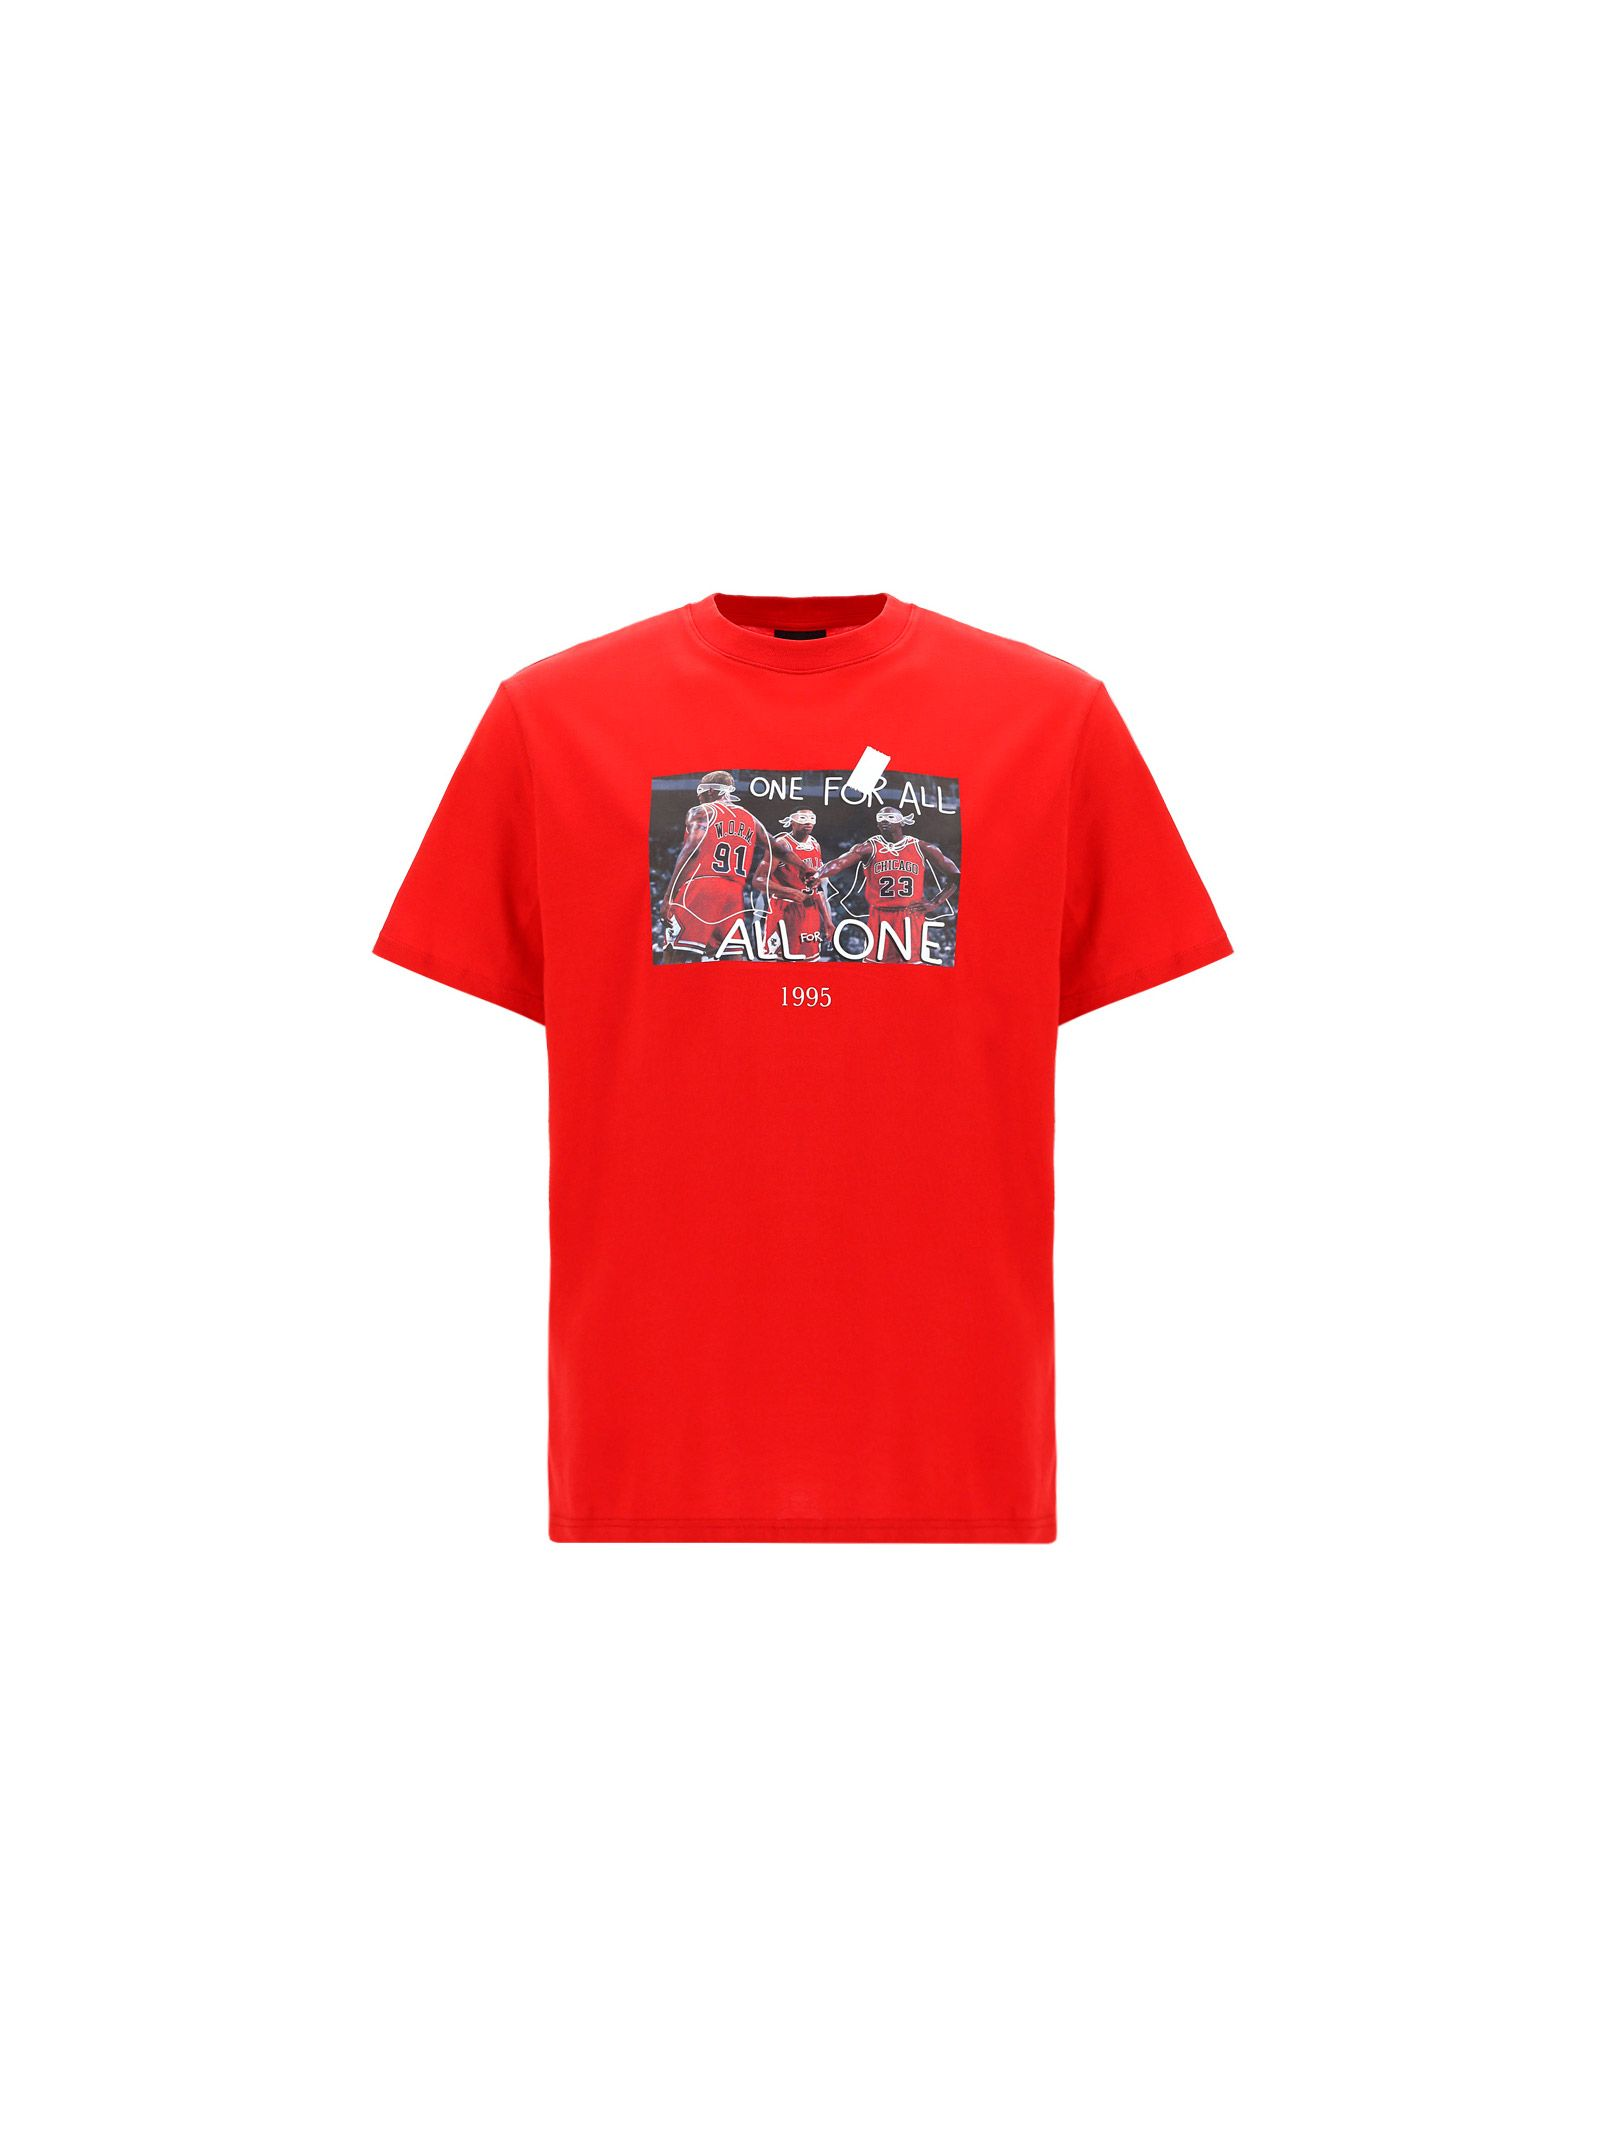 Throwback Cottons THROWBACK. MEN'S TBT45S2RED RED OTHER MATERIALS T-SHIRT